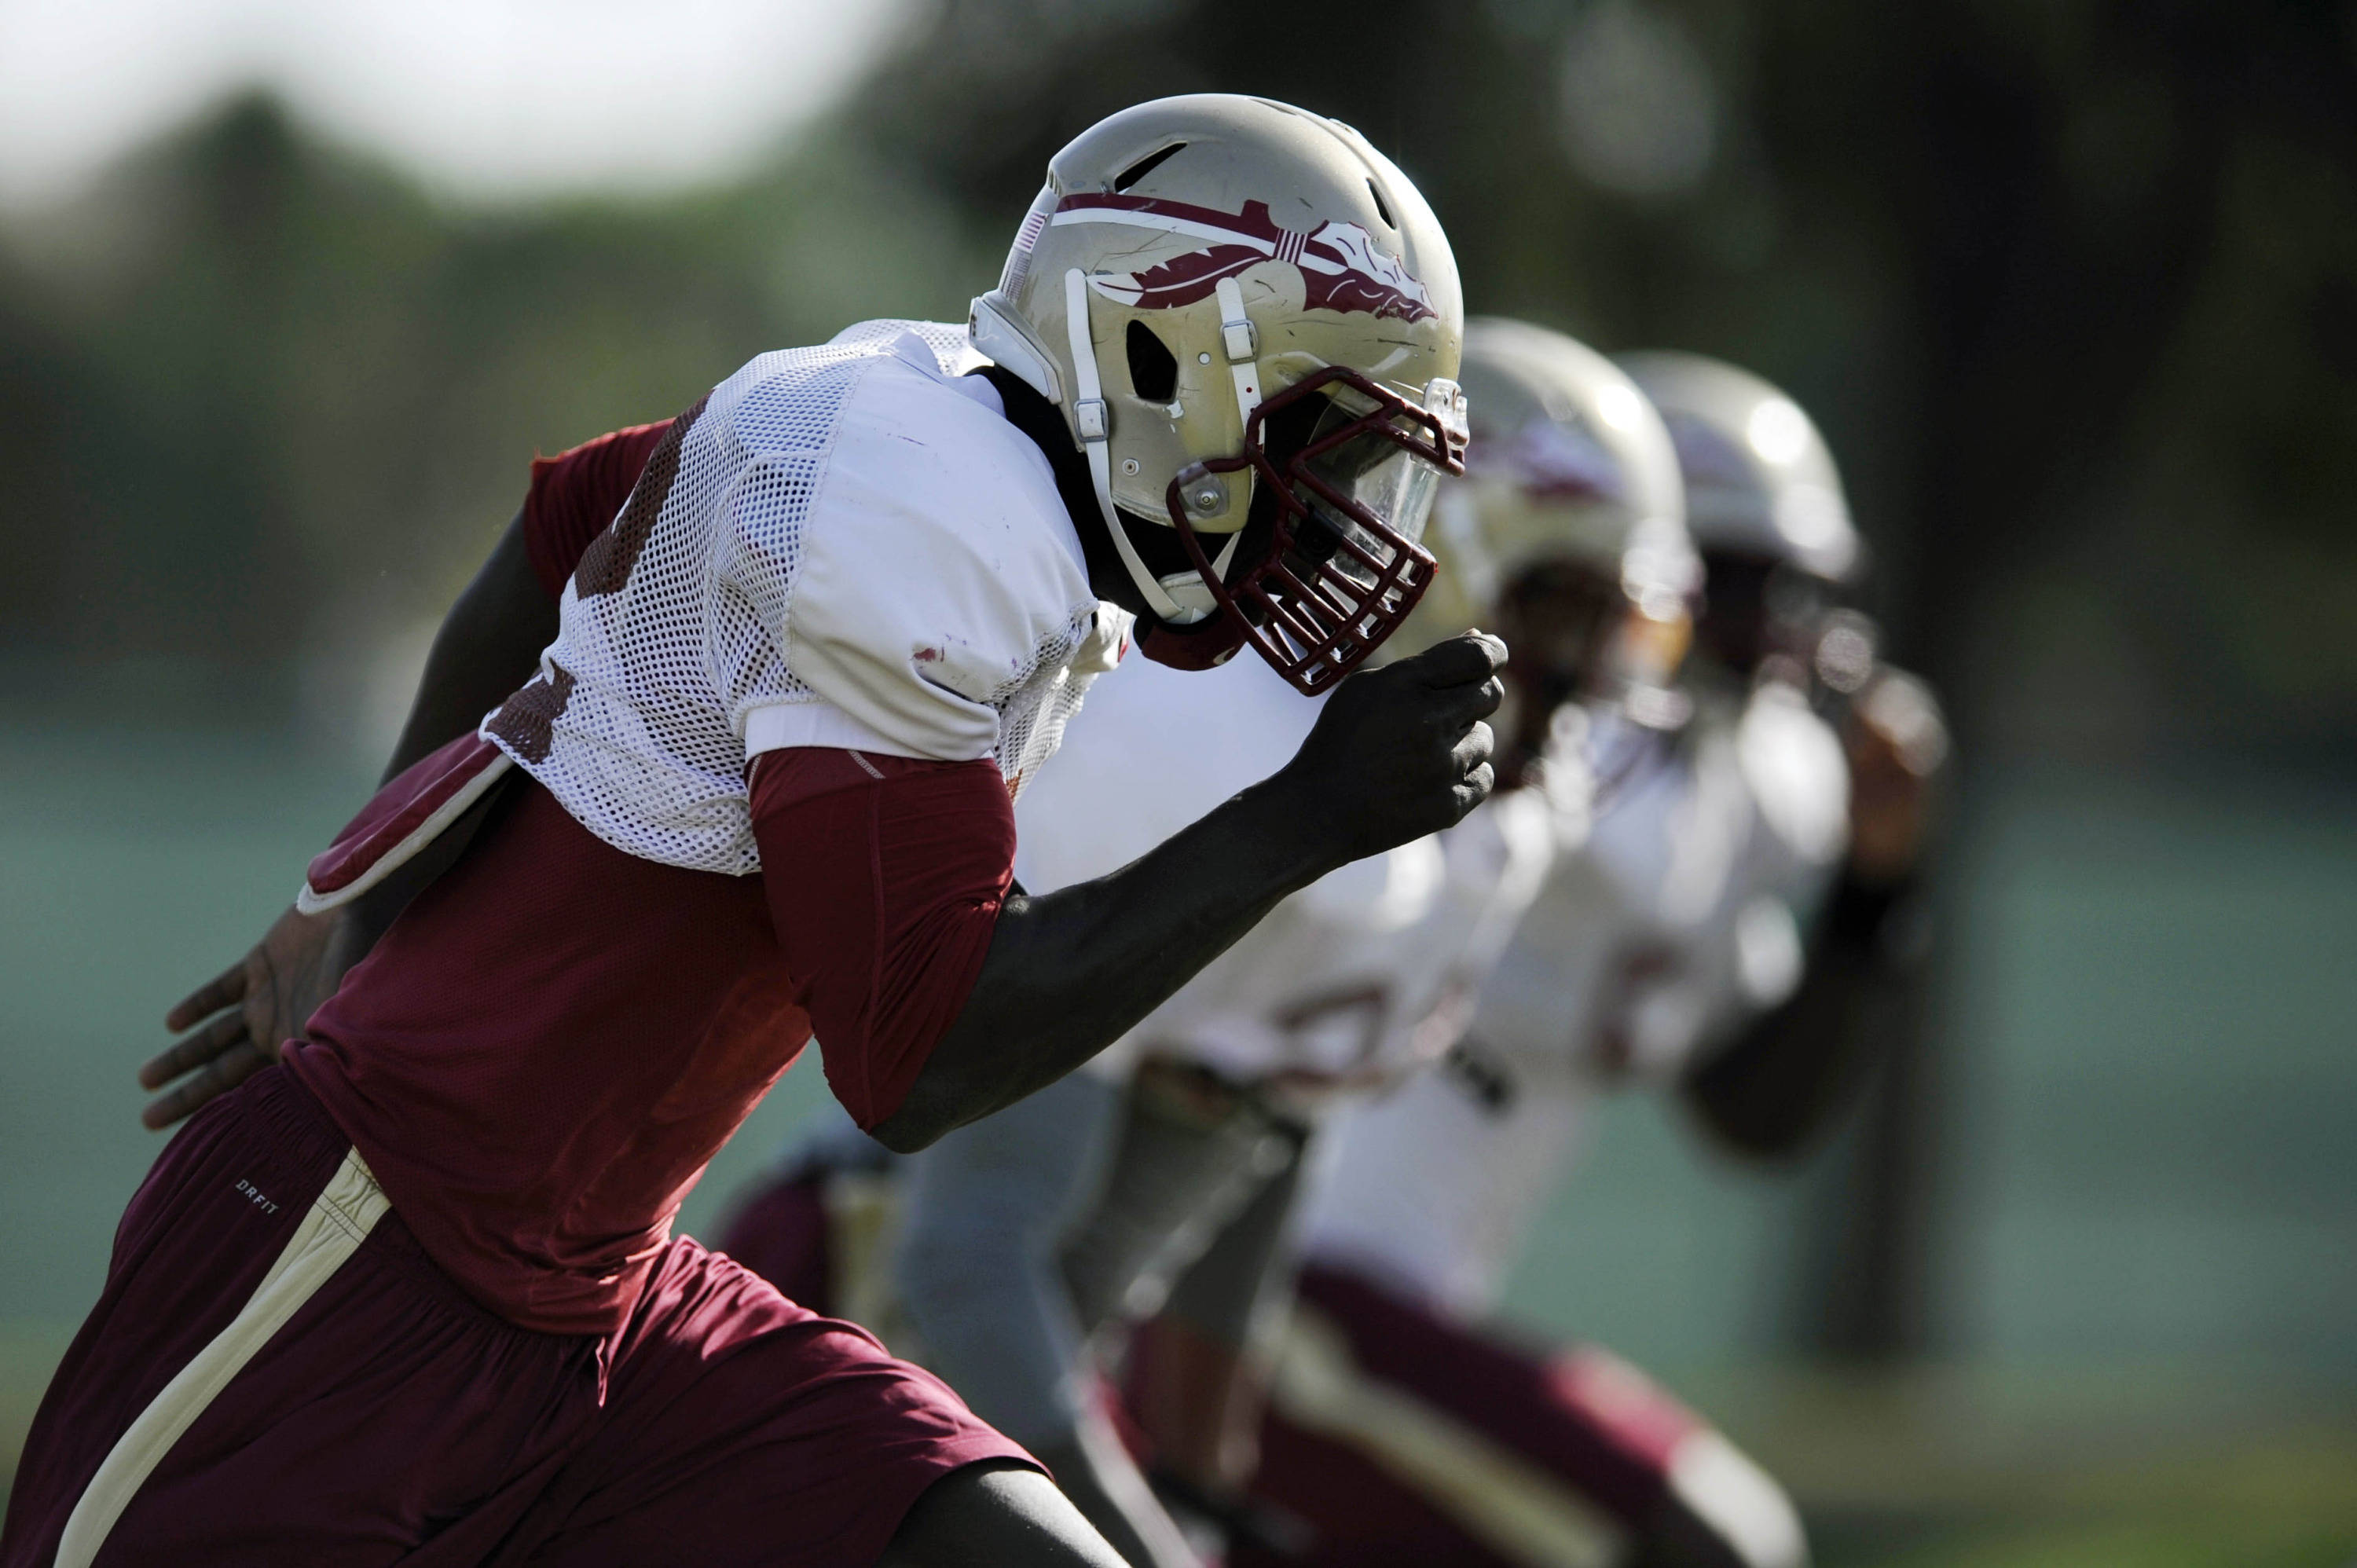 Jan 3, 2014; Orange, CA, USA; Florida State Seminoles linebacker Telvin Smith (22) during practice for the BCS National Championship football game against the Auburn Tigers at Orange Coast College. Mandatory Credit: Kelvin Kuo-USA TODAY Sports